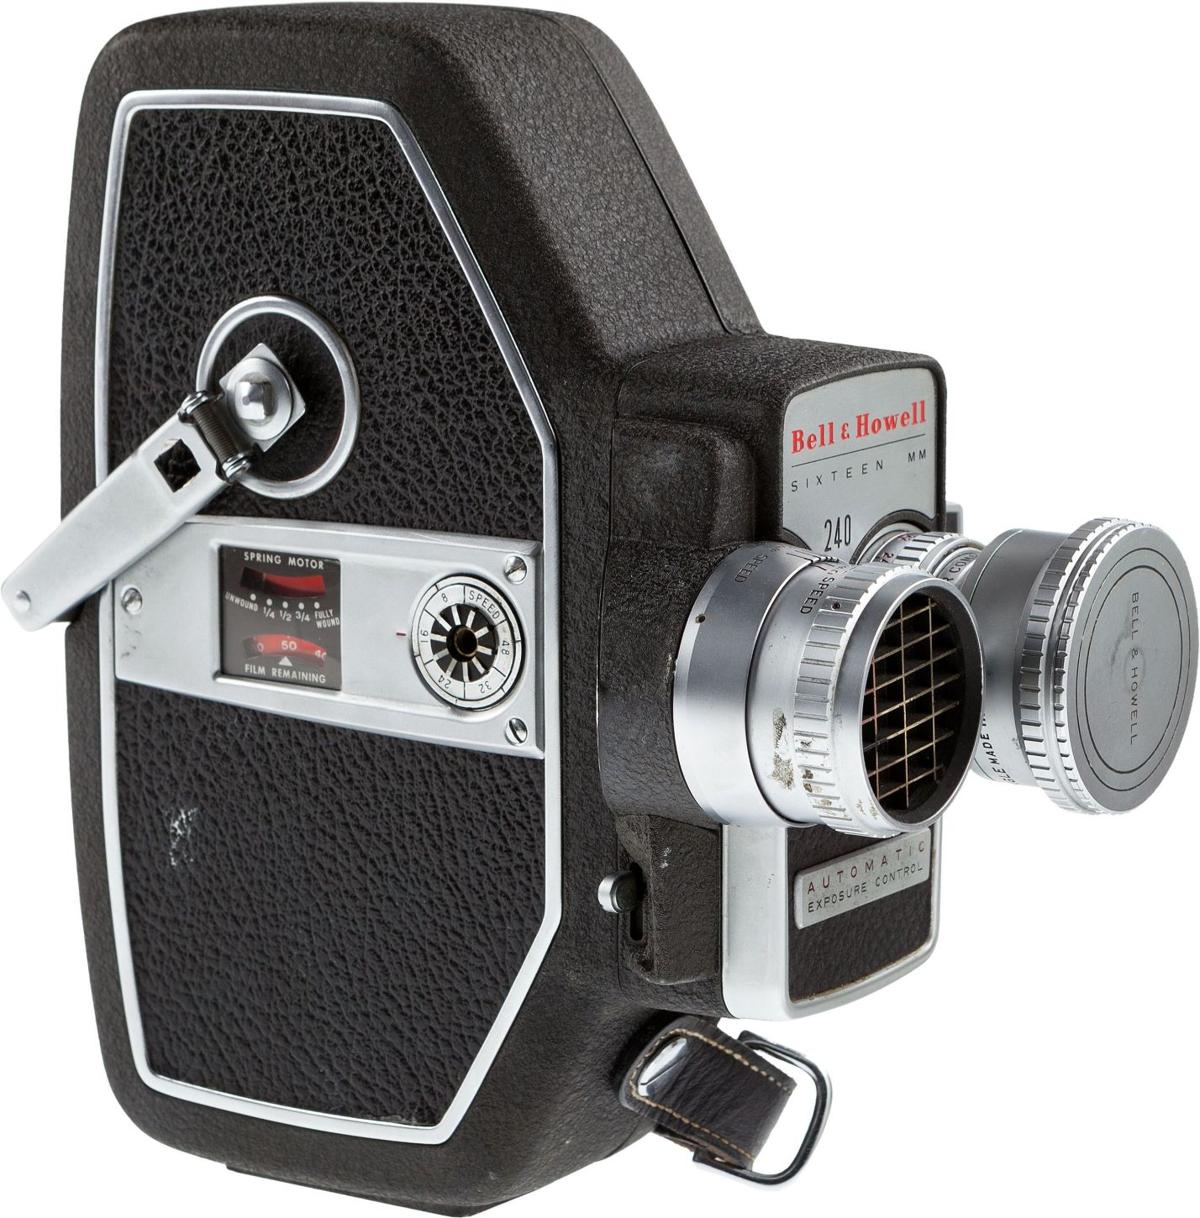 Orson Welles' camera, other items up for auction